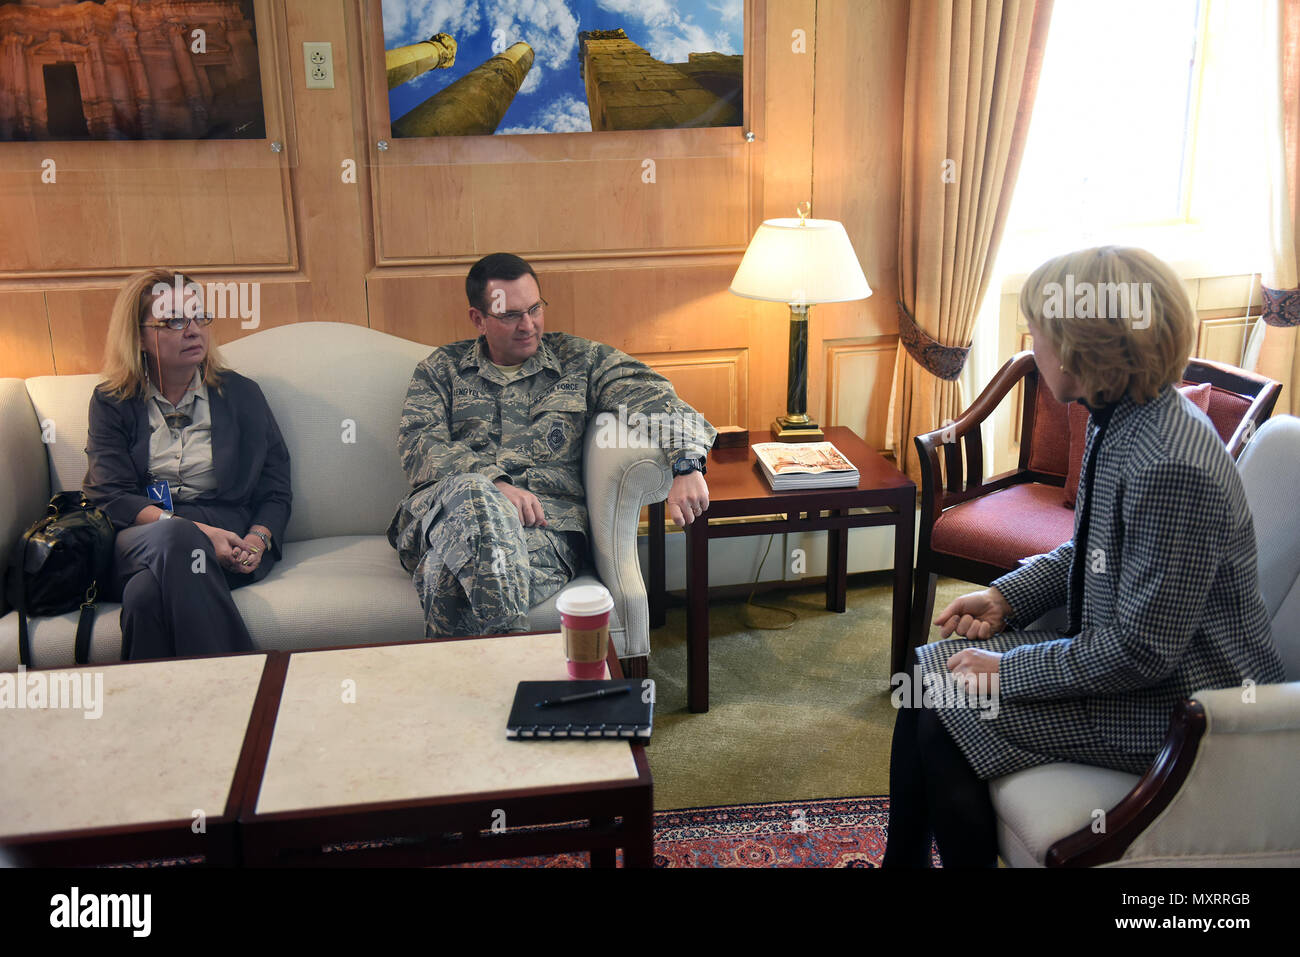 Ambassador Tatiana Gfoeller, left, foreign policy advisor to the chief of the National Guard Bureau, and Air Force Gen. Joseph Lengyel, chief, National Guard Bureau, talk with Ambassador Alice Wells, U.S. ambassador to the Hashemite Kingdom of Jordan, during a Thanksgiving troop visit, Nov. 27, 2016. (U.S. Army National Guard photo by Sgt. 1st Class Jim Greenhill) - Stock Image